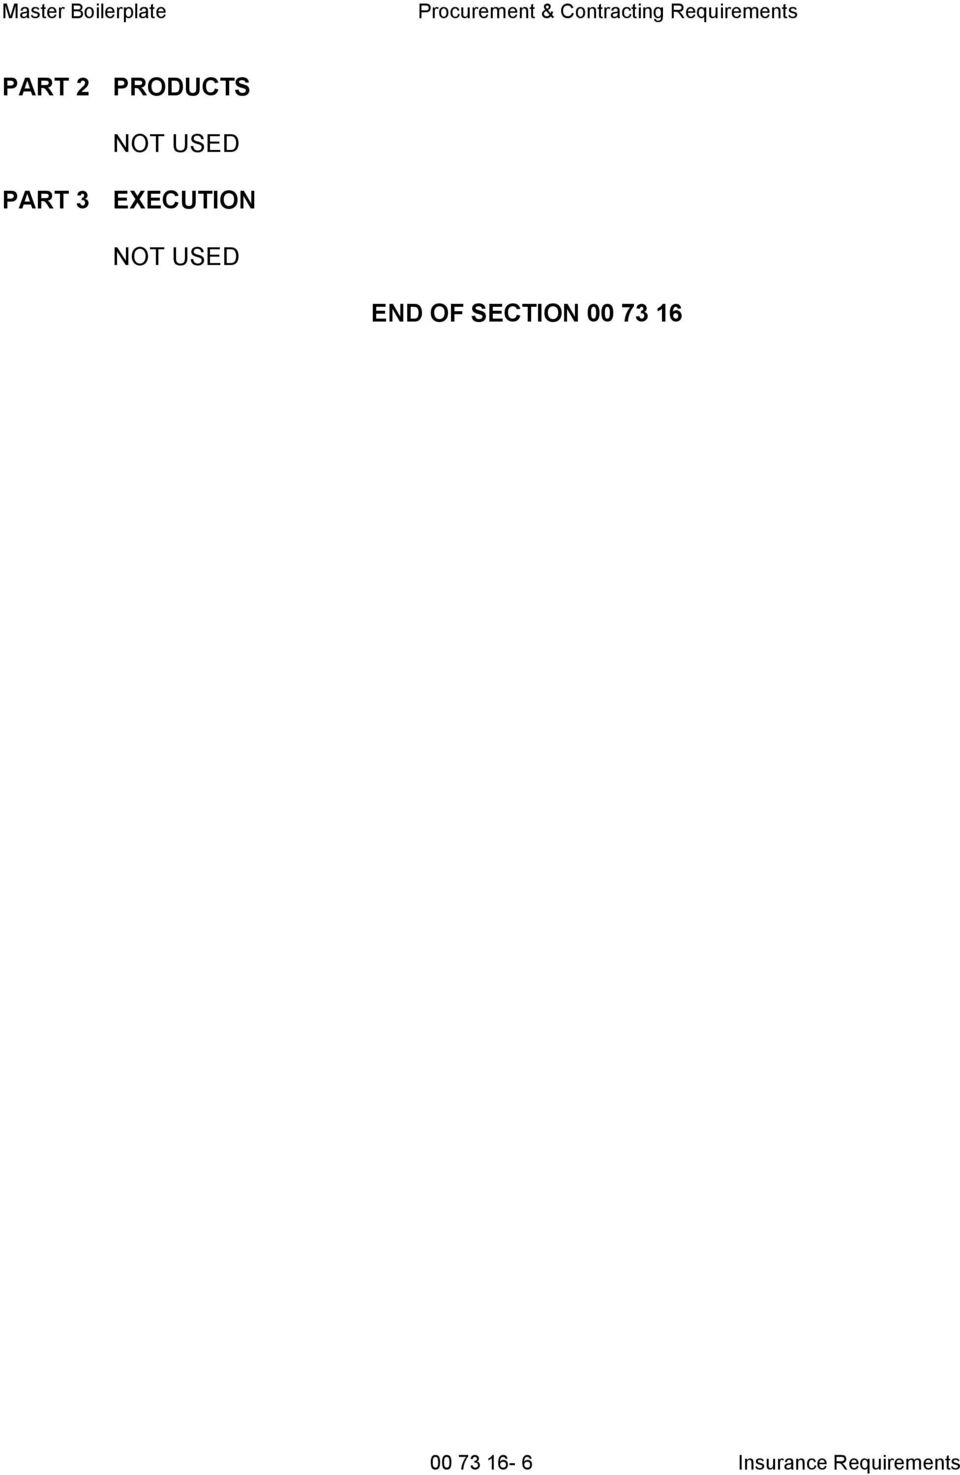 END OF SECTION 00 73 16 00